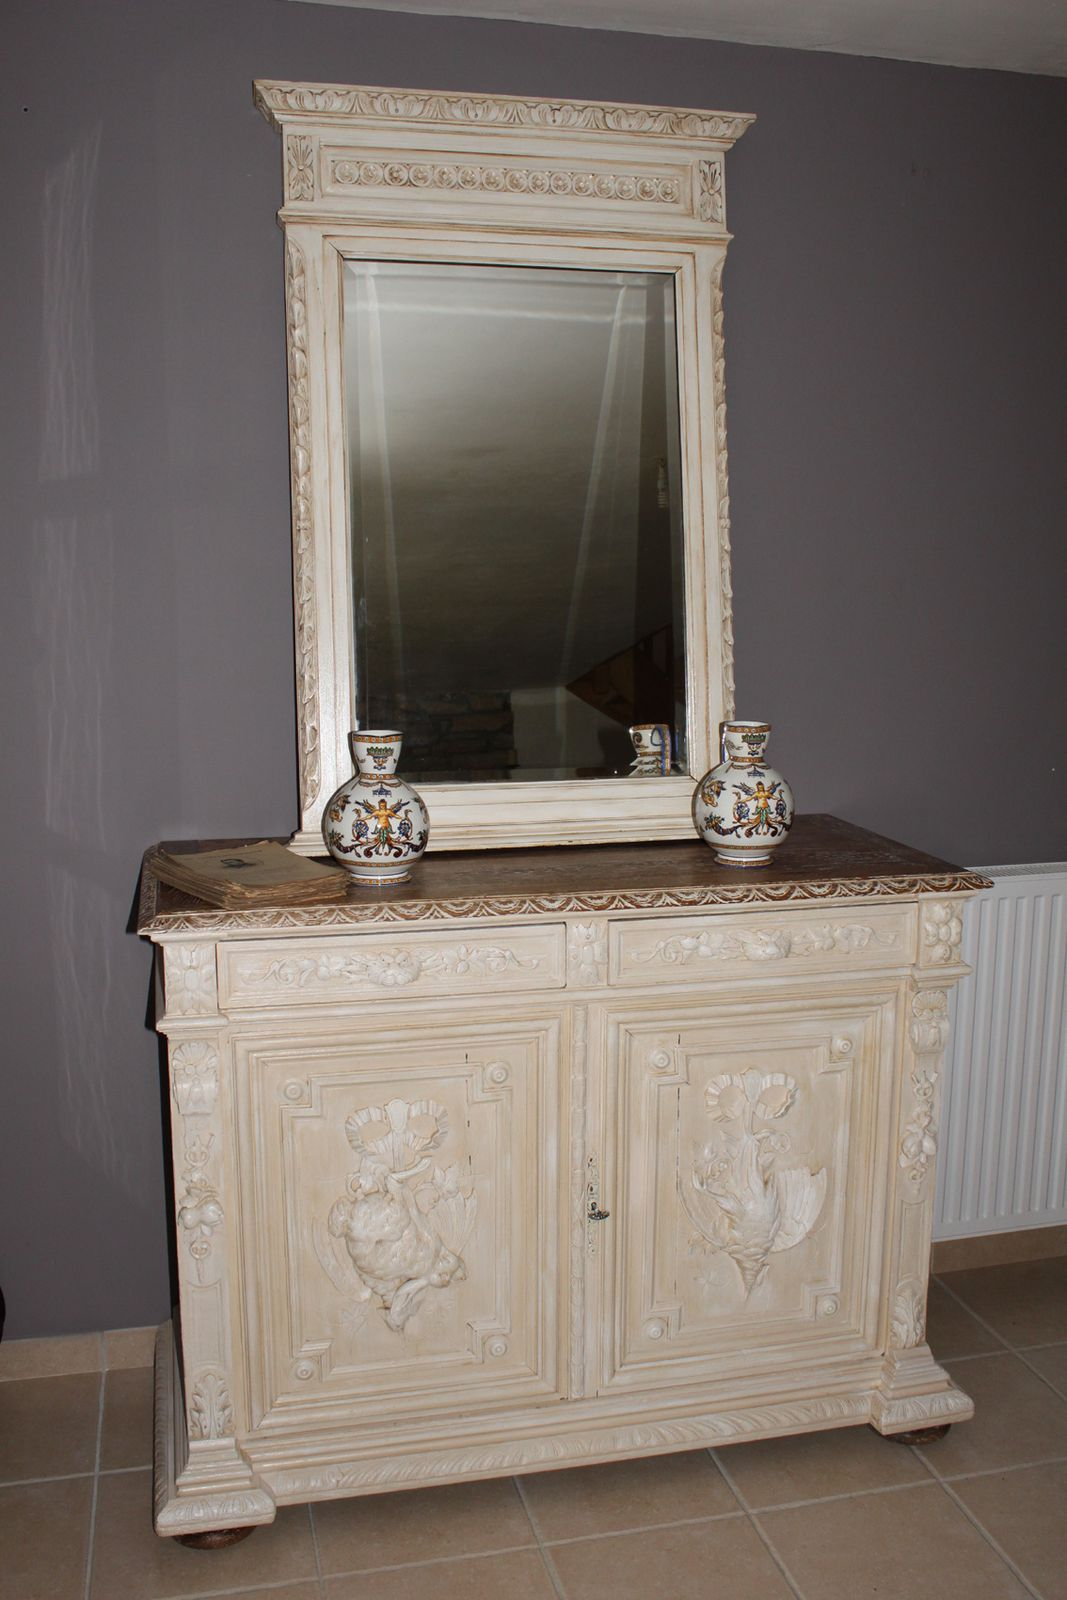 album buffet et miroir henri ii patin beige brocante. Black Bedroom Furniture Sets. Home Design Ideas